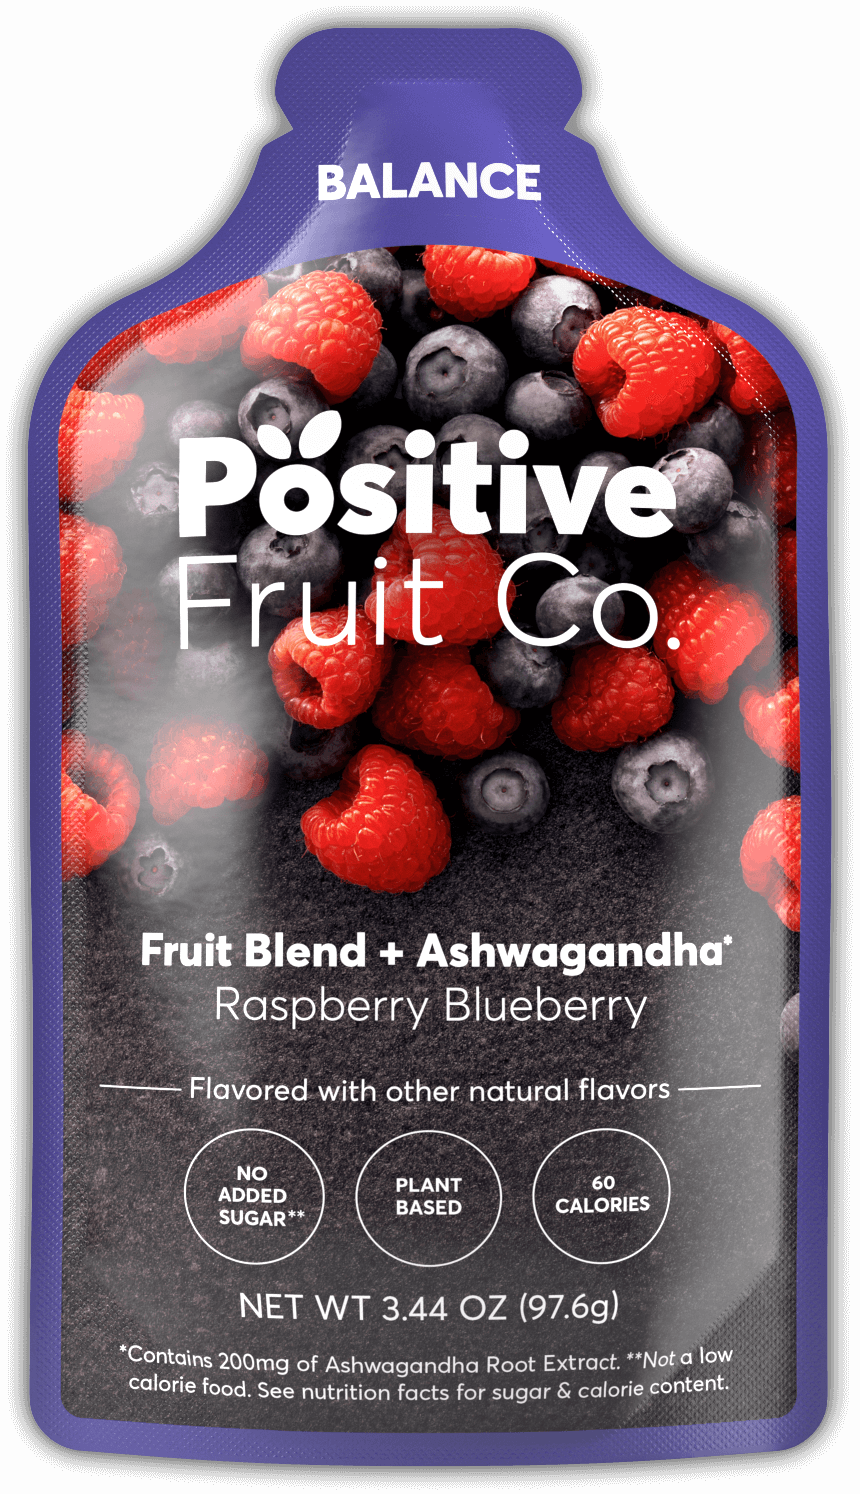 Positive Fruit Co package